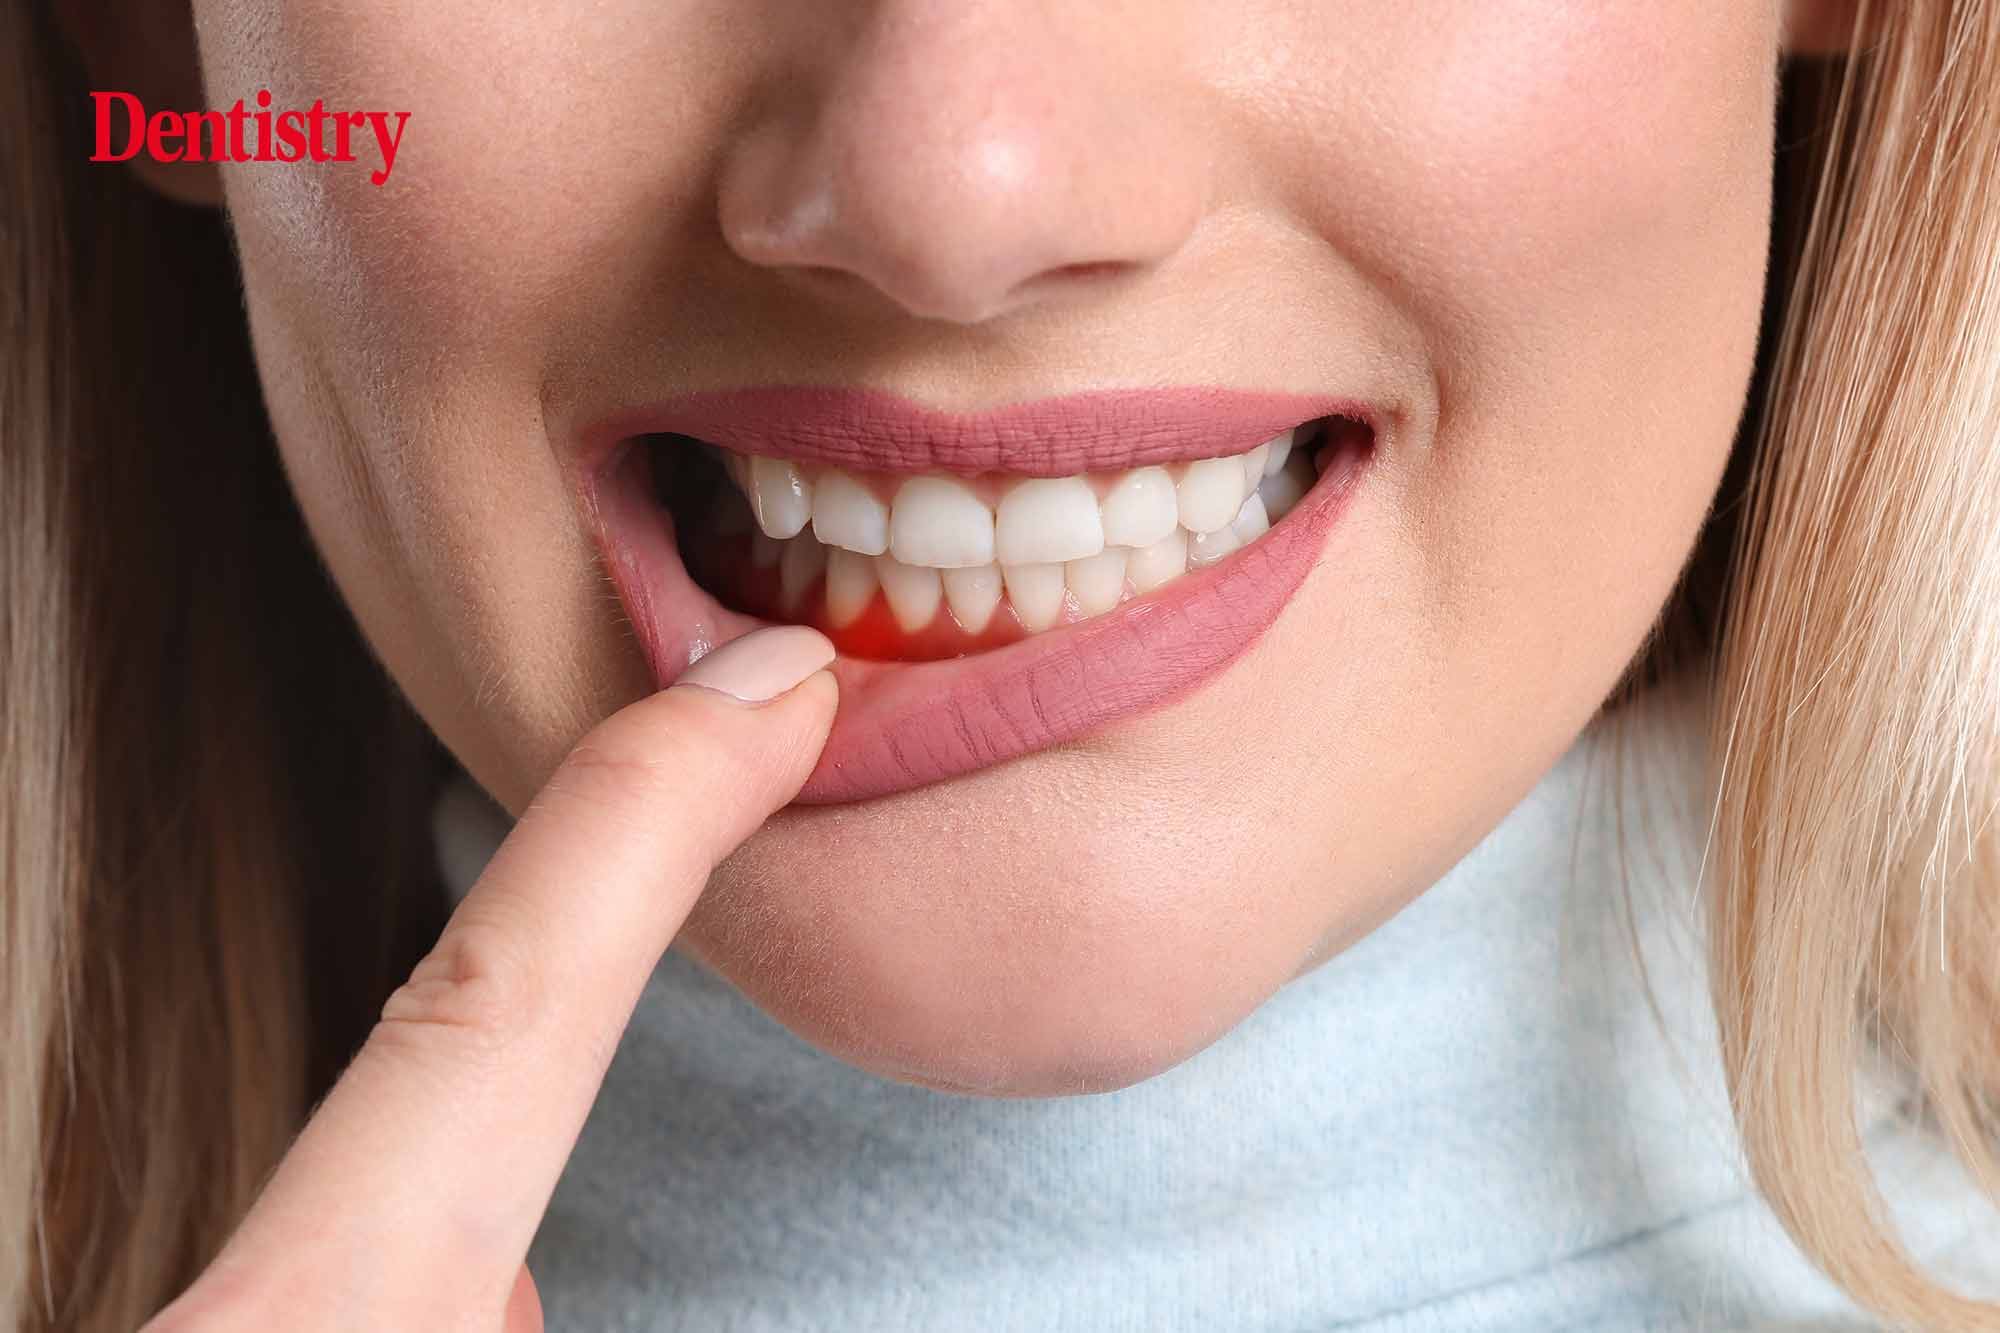 More effective preventative measures for oral care could save billions in healthcare costs